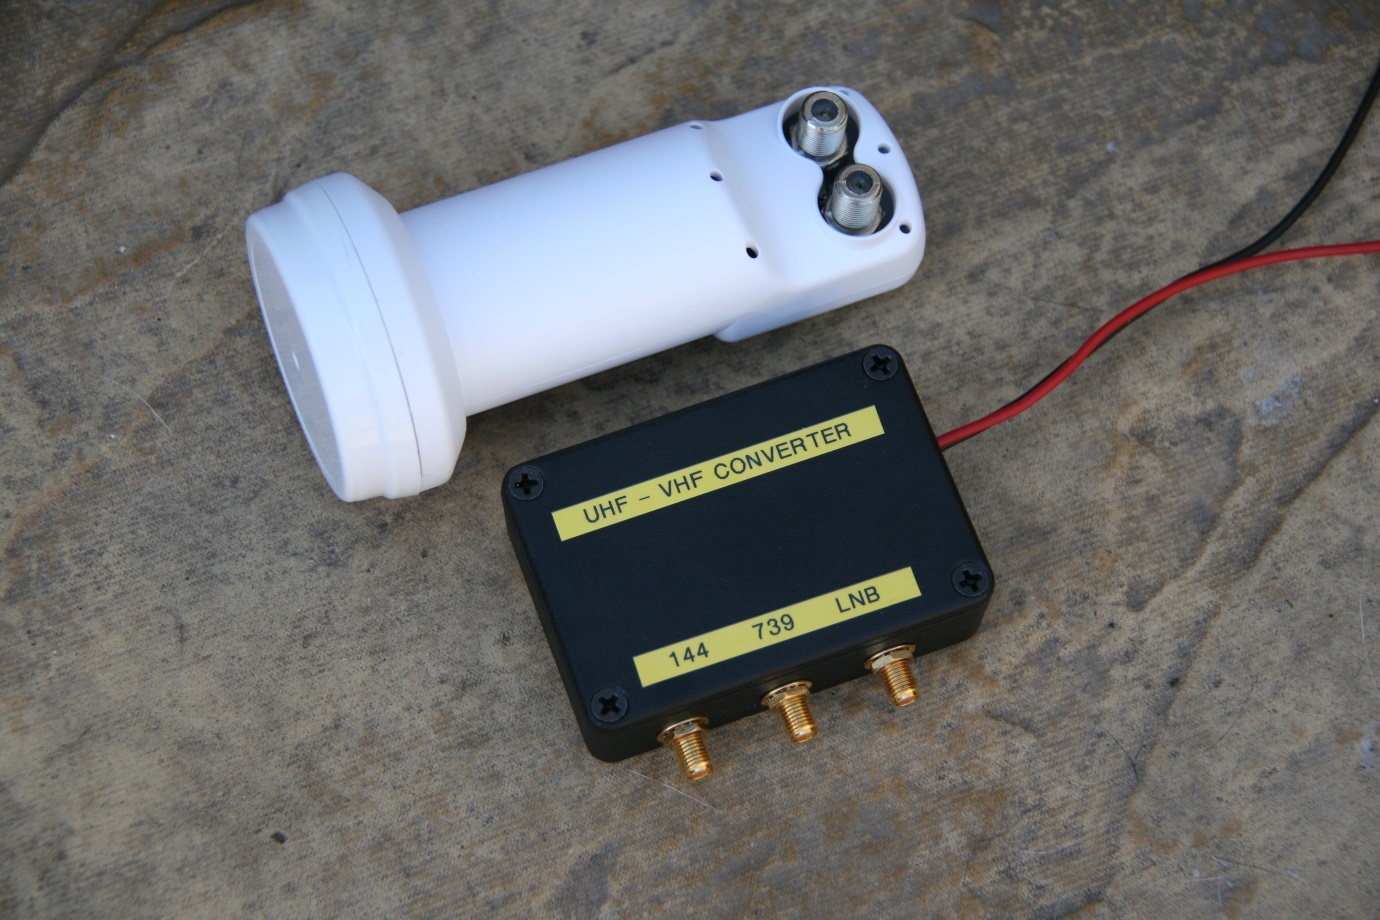 G0MRF UHF-VHF Receive Converter for use with a satellite LNB | AMSAT-UK